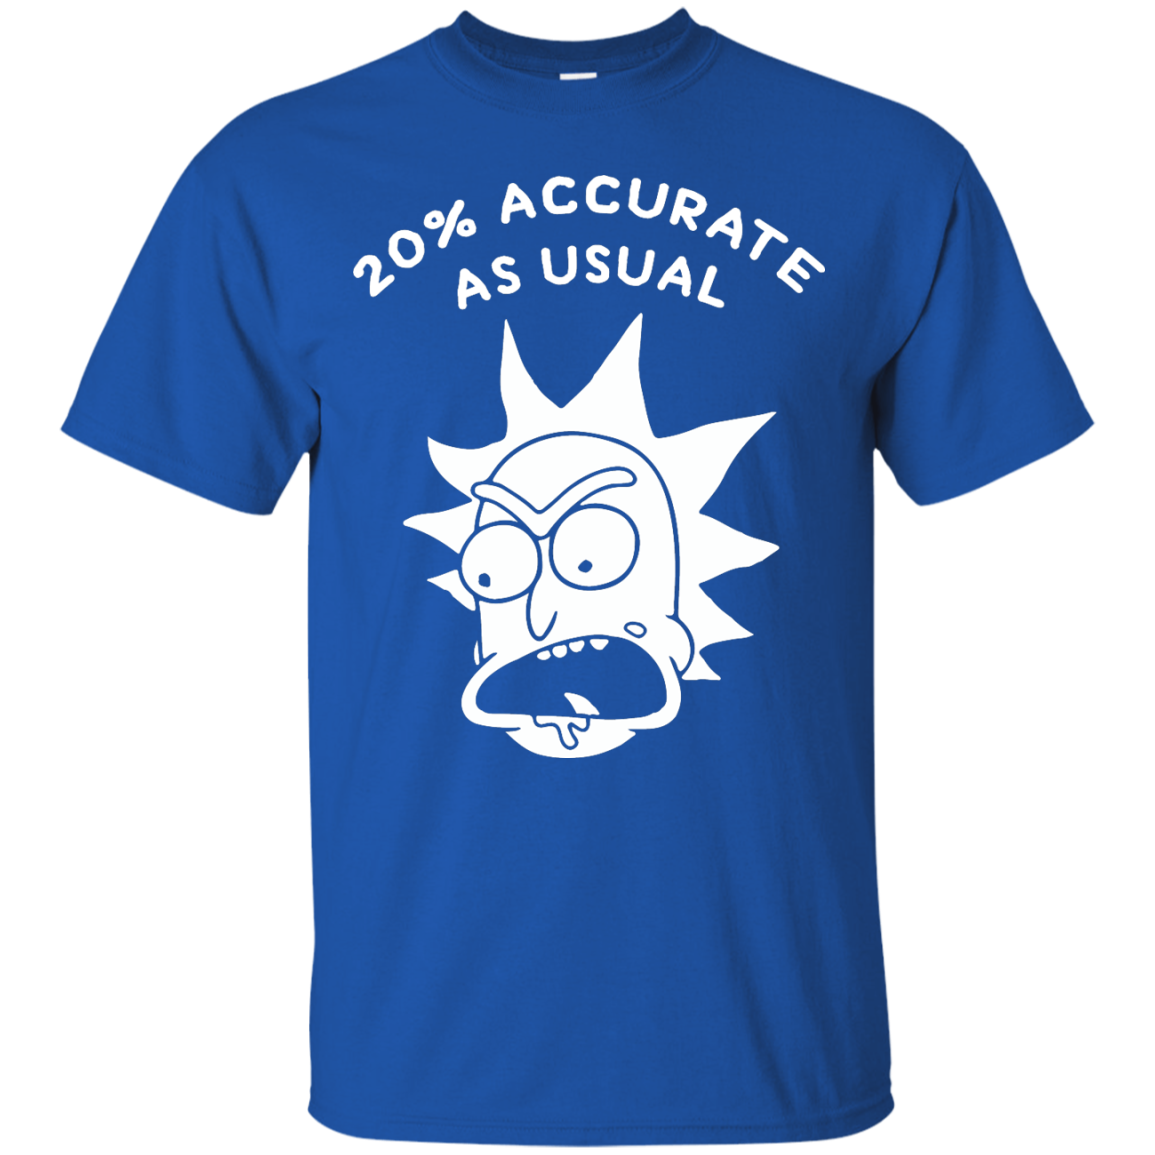 Rick and Morty 20% Accurate as Usual T Shirt, Hoodies, Tank Top